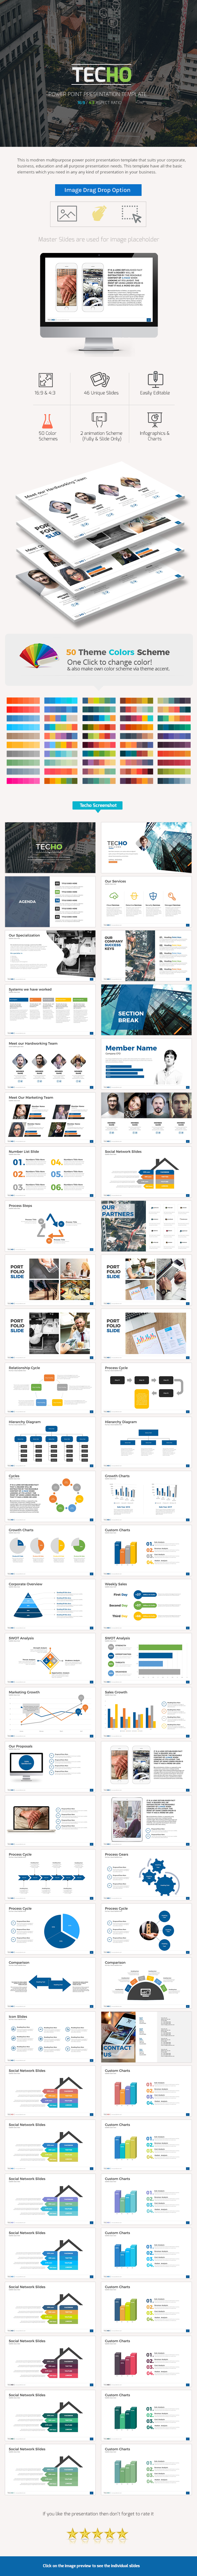 Techo Power Point Presentation - Business PowerPoint Templates